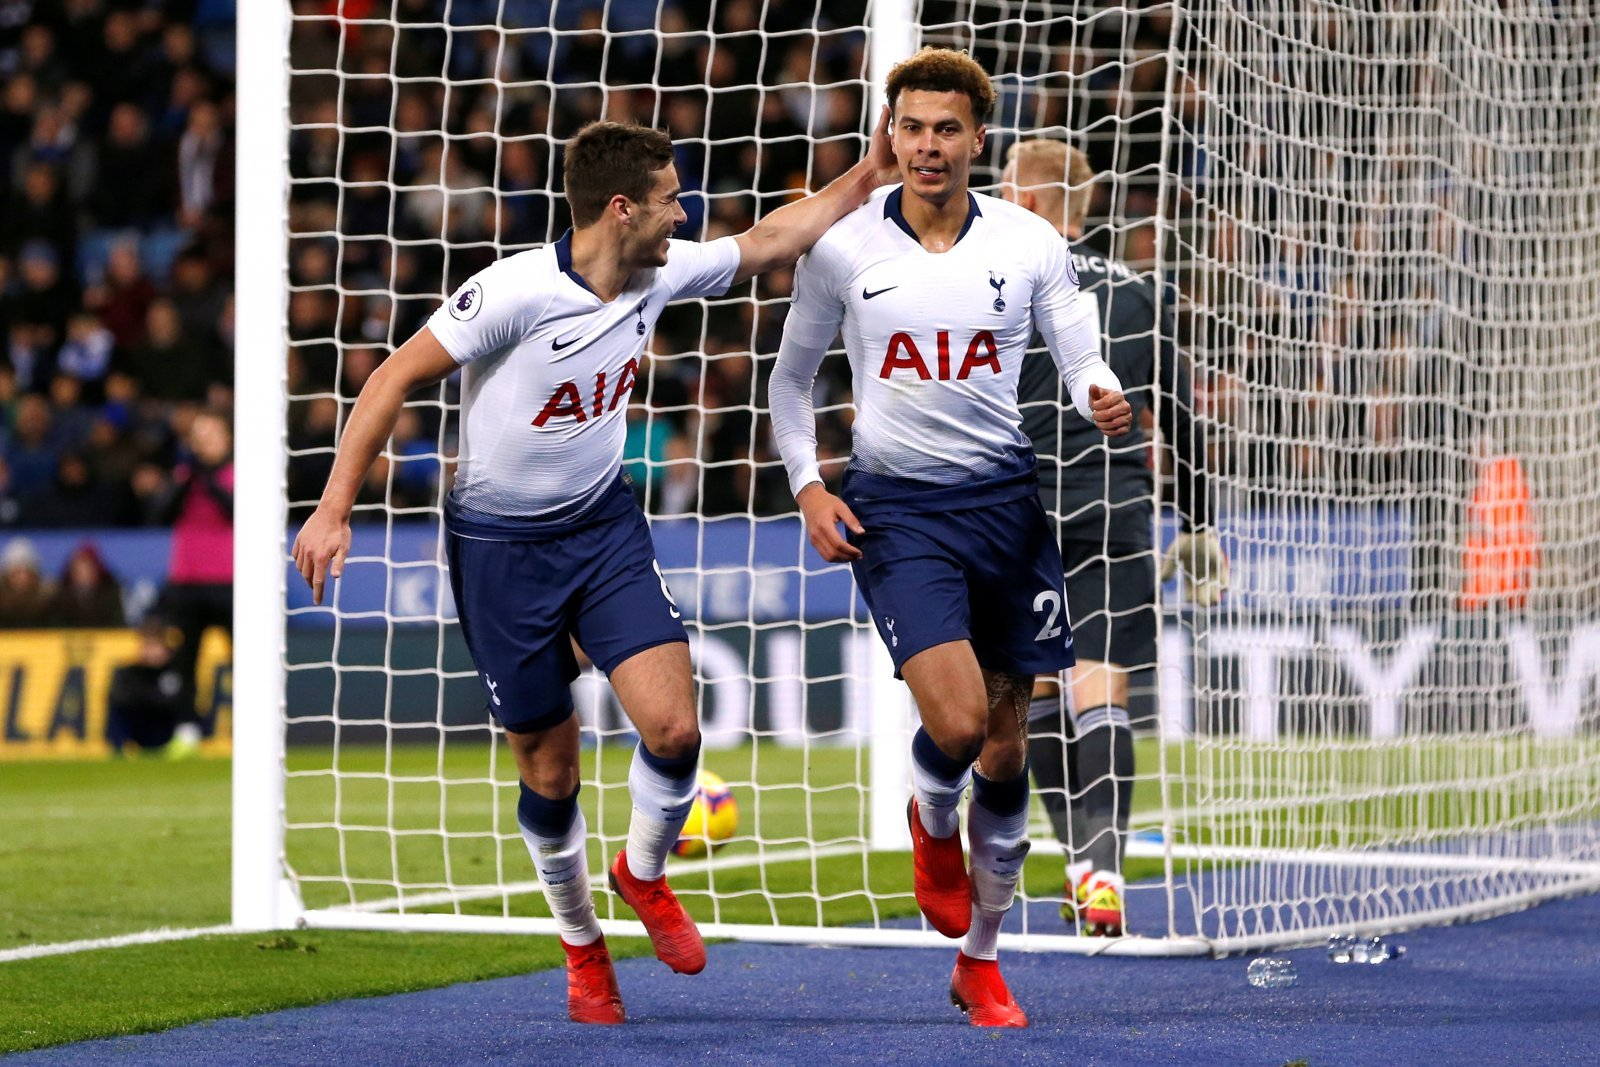 Tottenham team news: Alli could feature against Wolves